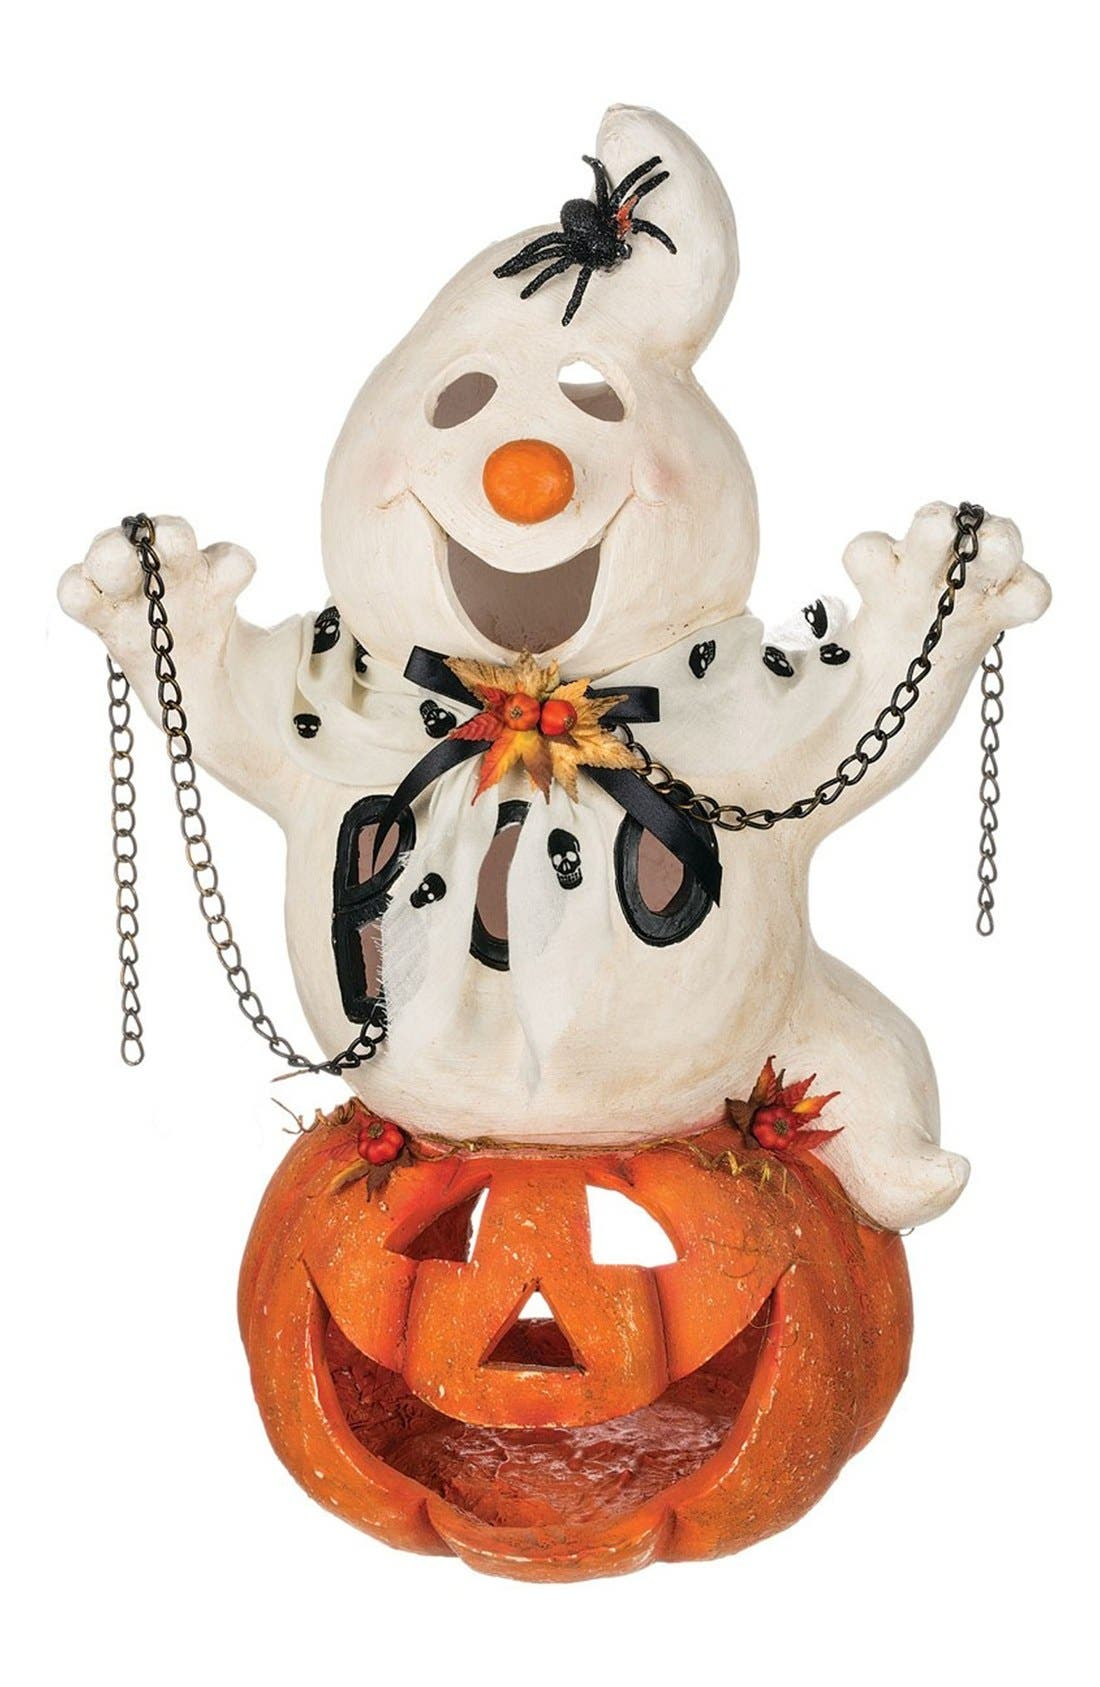 Alternate Image 1 Selected - Sullivans 'Ghost & Jack O' Lantern' Halloween Decoration